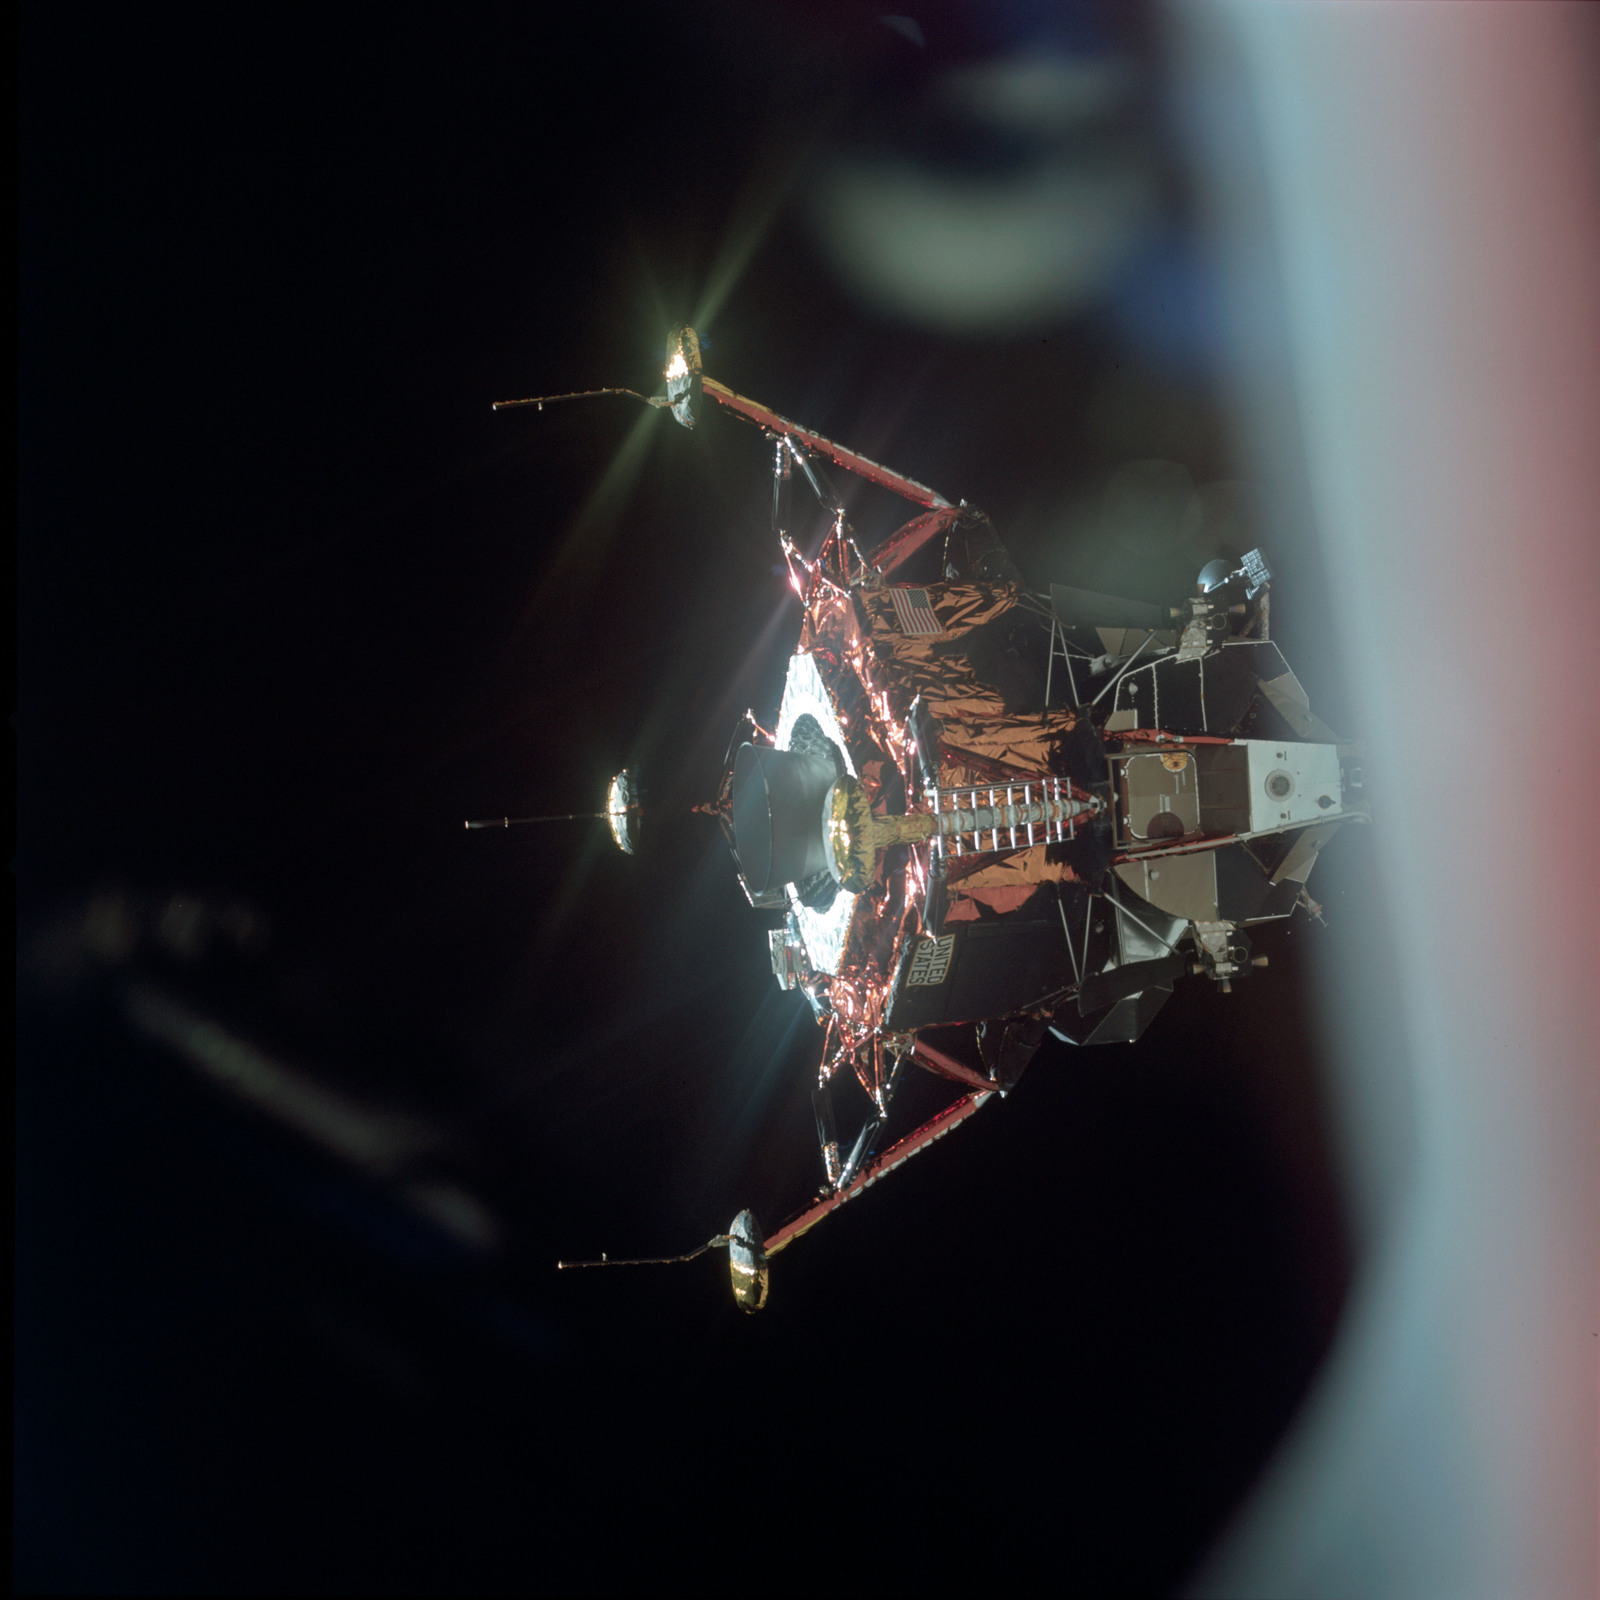 AS11-44-6574 - Apollo 11 - Apollo 11 Mission image - View of Lunar Module separation from the Command Module